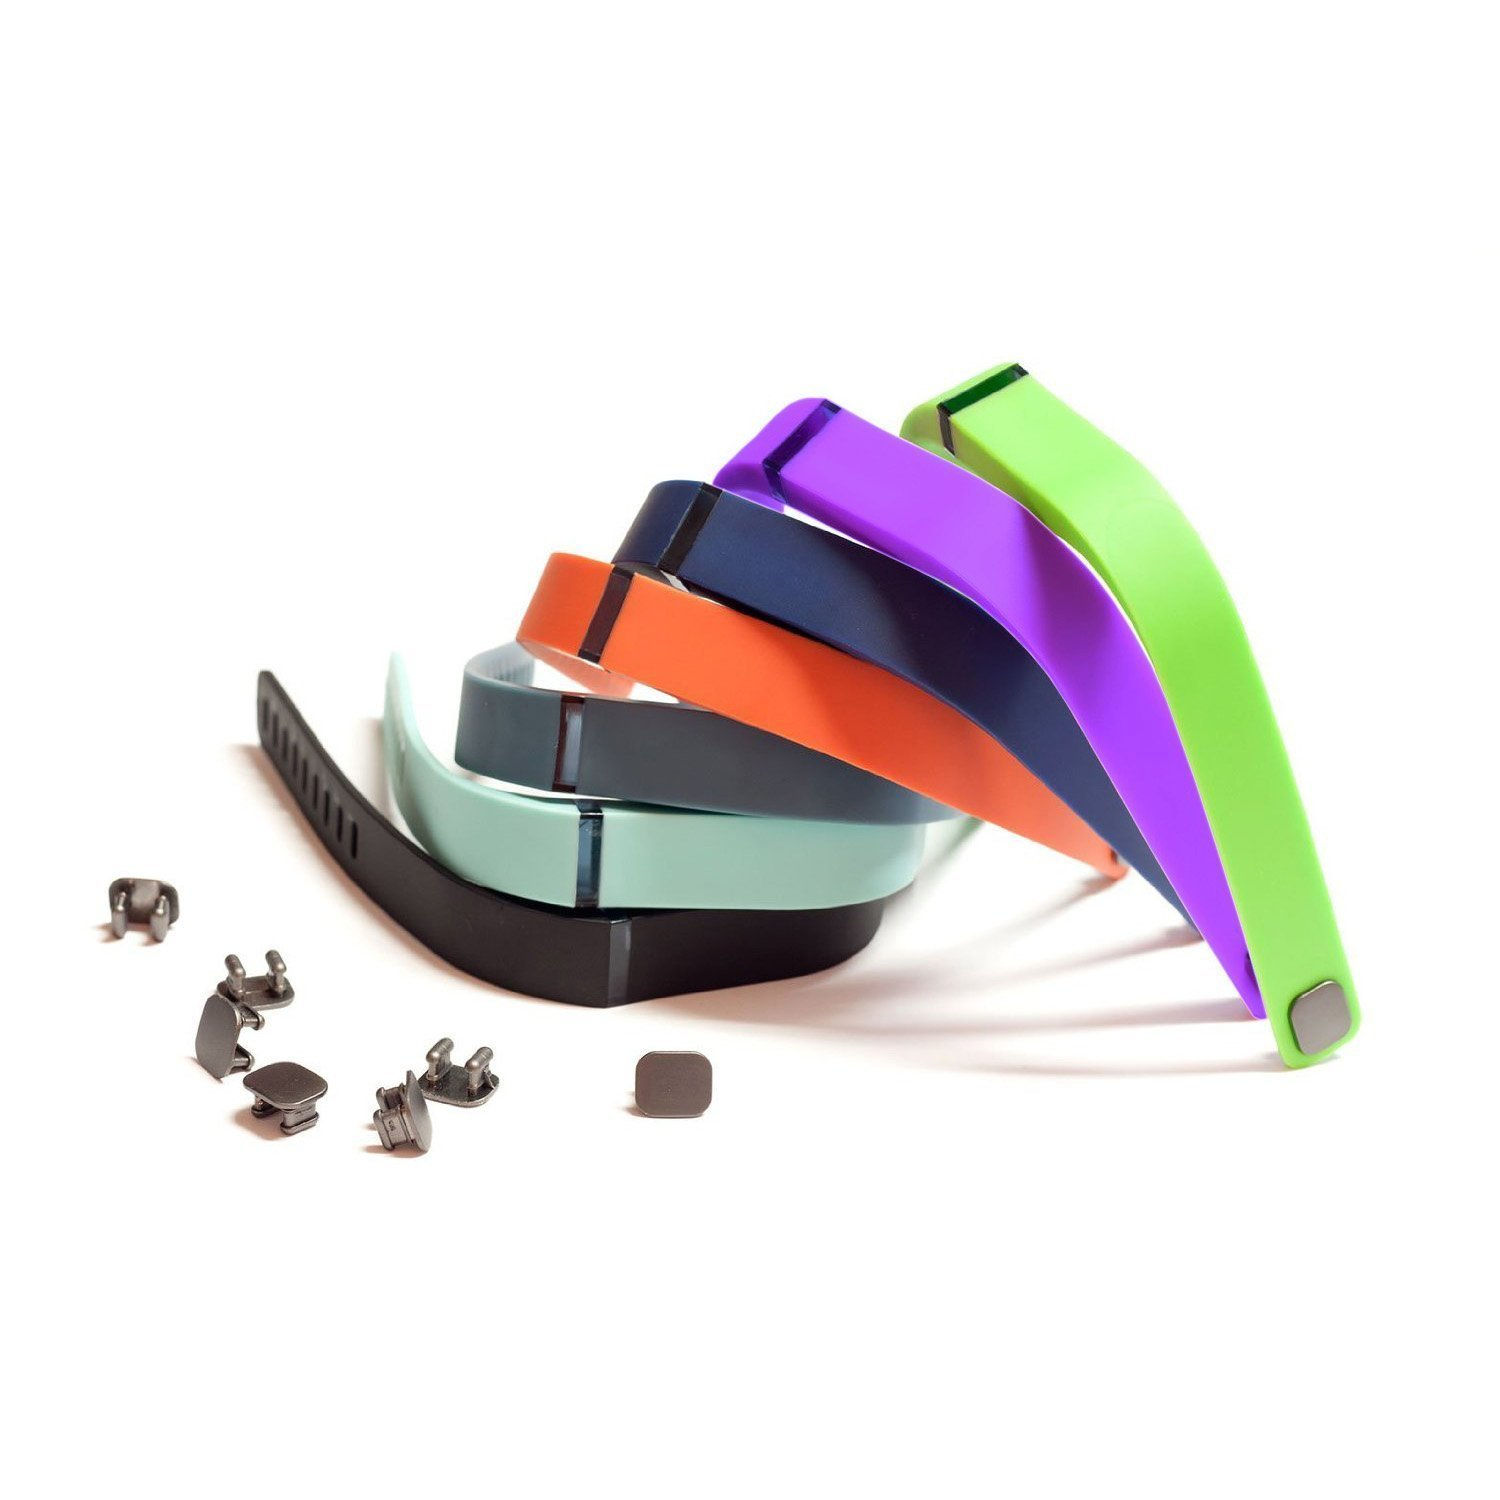 Set L 7 Pcs: Black Navy (Blue) Slate (Blue/Grey) Teal (Blue/Green) Red (Tangerine) Lime (Green) Purple (Purple/Pink) Replacement Band + Clasps For Fitbit Flex /No Tracker (7color(Large))